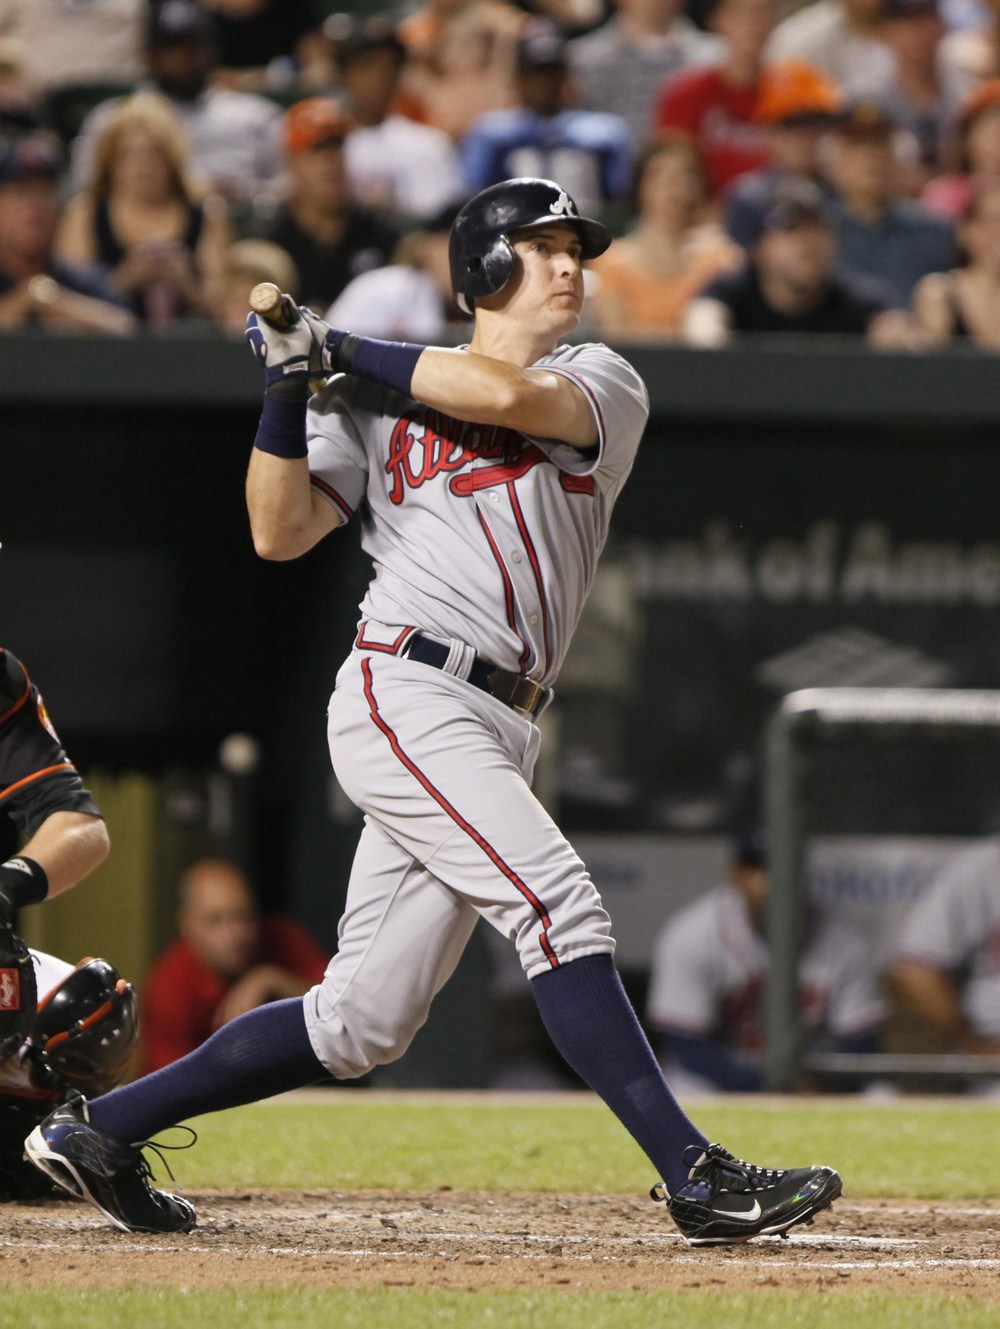 Kelly Johnson on the Braves